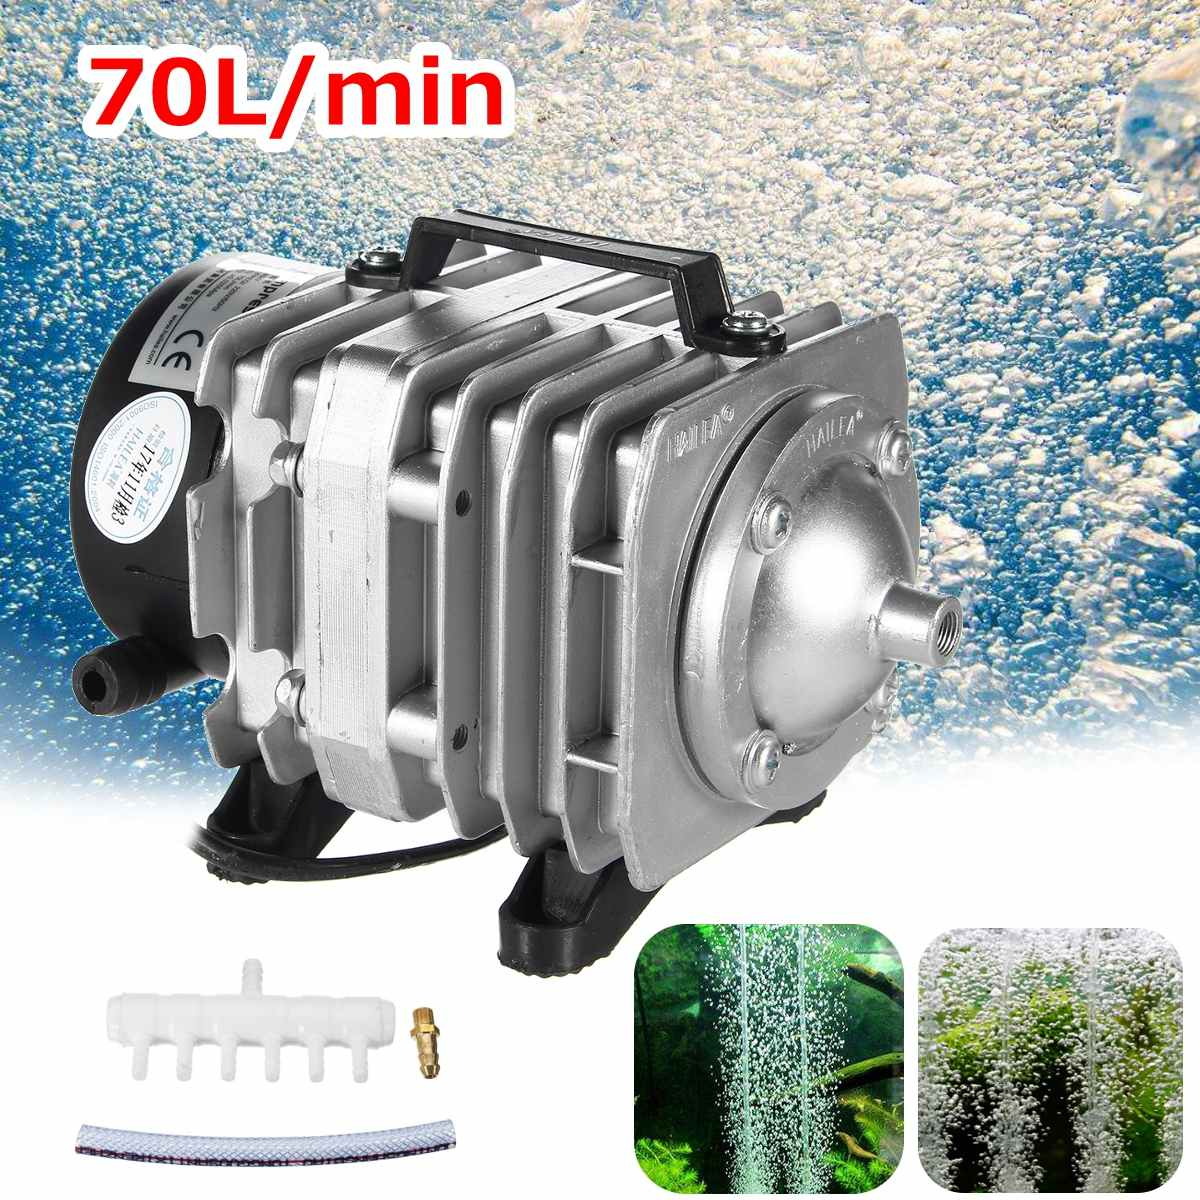 45W 220V ACO-318 Hailea 70L/min Electromagnetic Air Compressor Portable Koi Fish Tank Bubble Aquarium Air Pump Pond Aerator